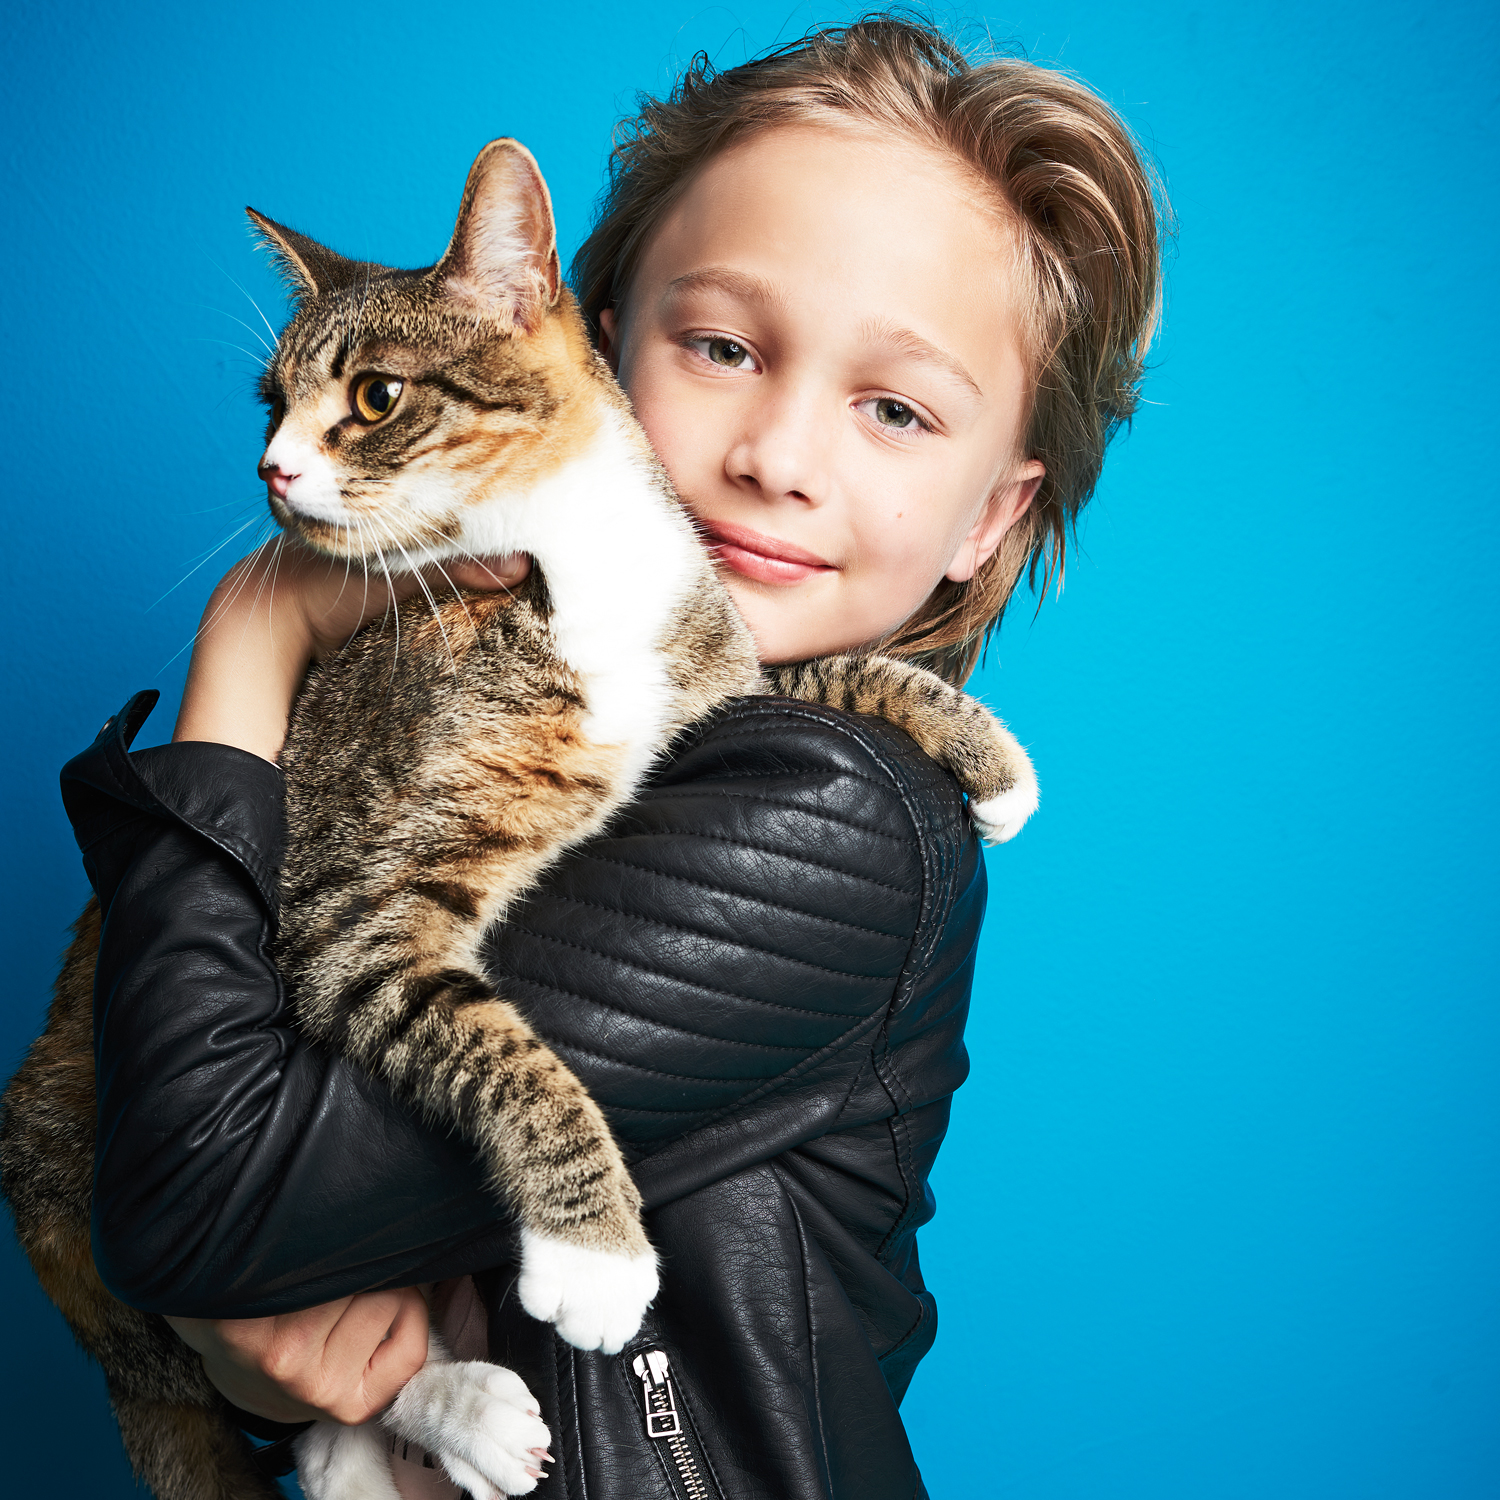 boy wearing black leather jacket holding domestic shorthair kitten